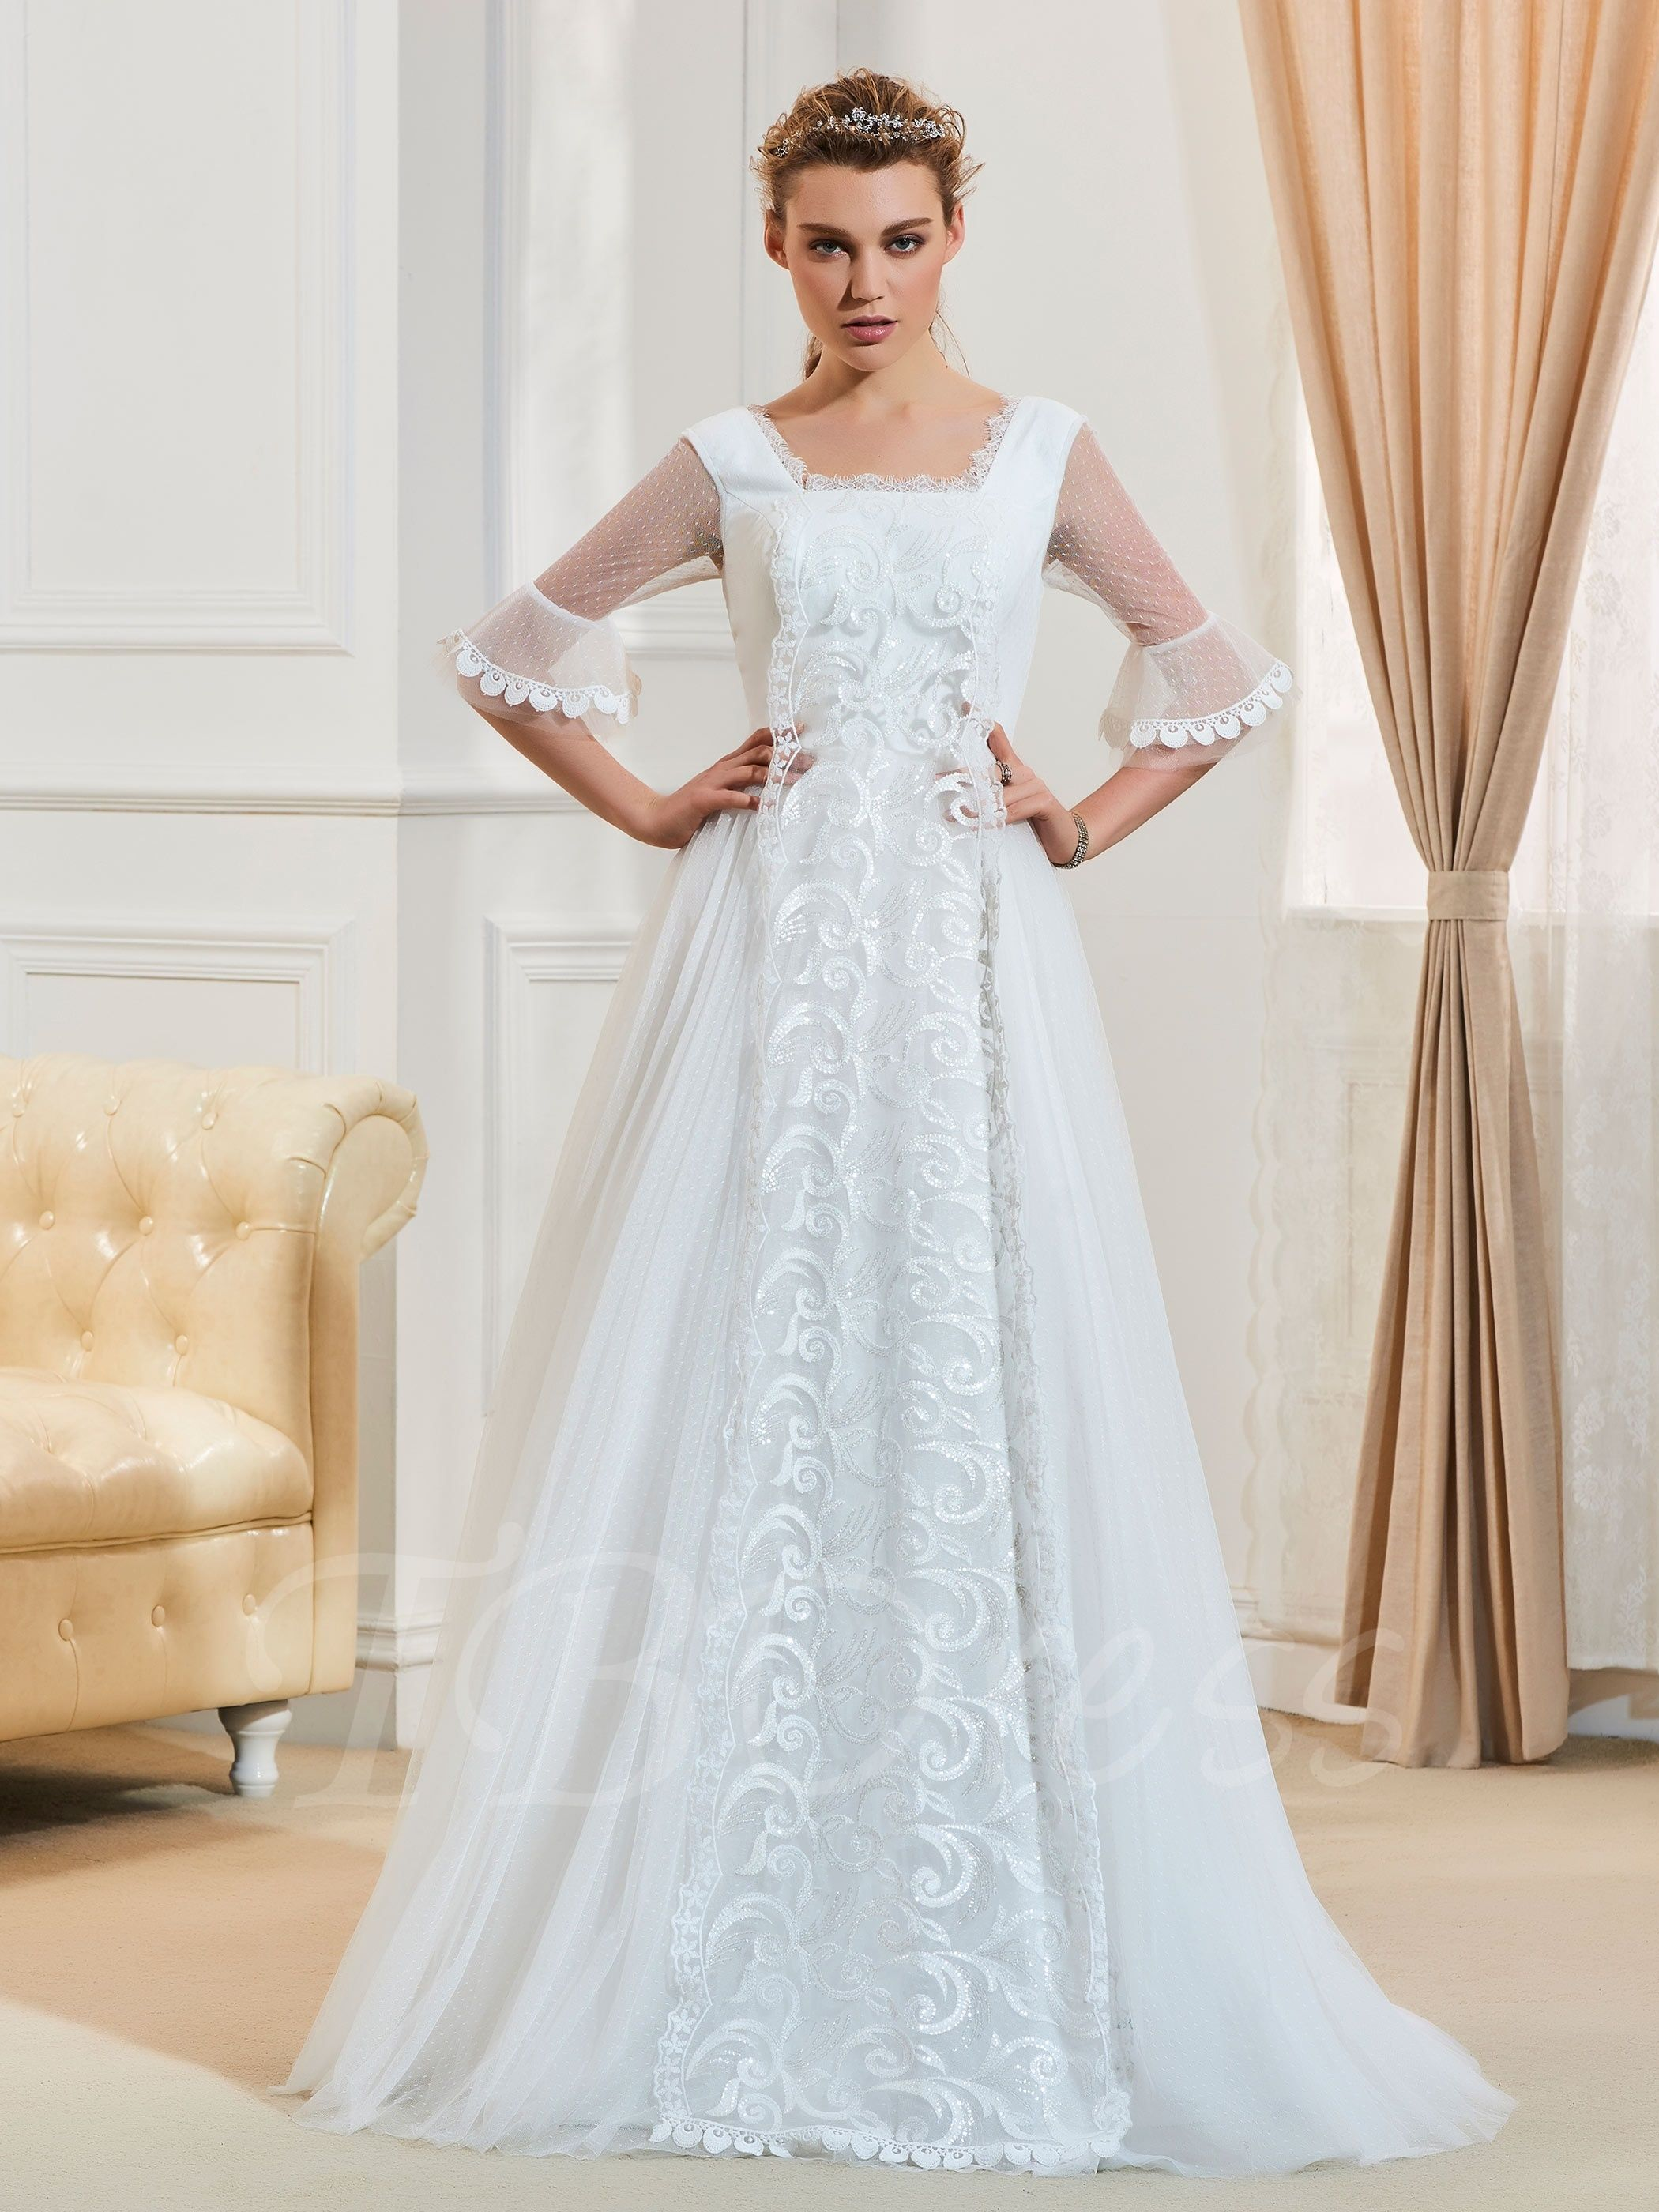 I Want This Dress In Black Tbdress Com Offers High Quality Square Neck Half Sleeves Appliques A Line Wedding Dr A Line Wedding Dress Wedding Dresses Dresses [ 2800 x 2100 Pixel ]